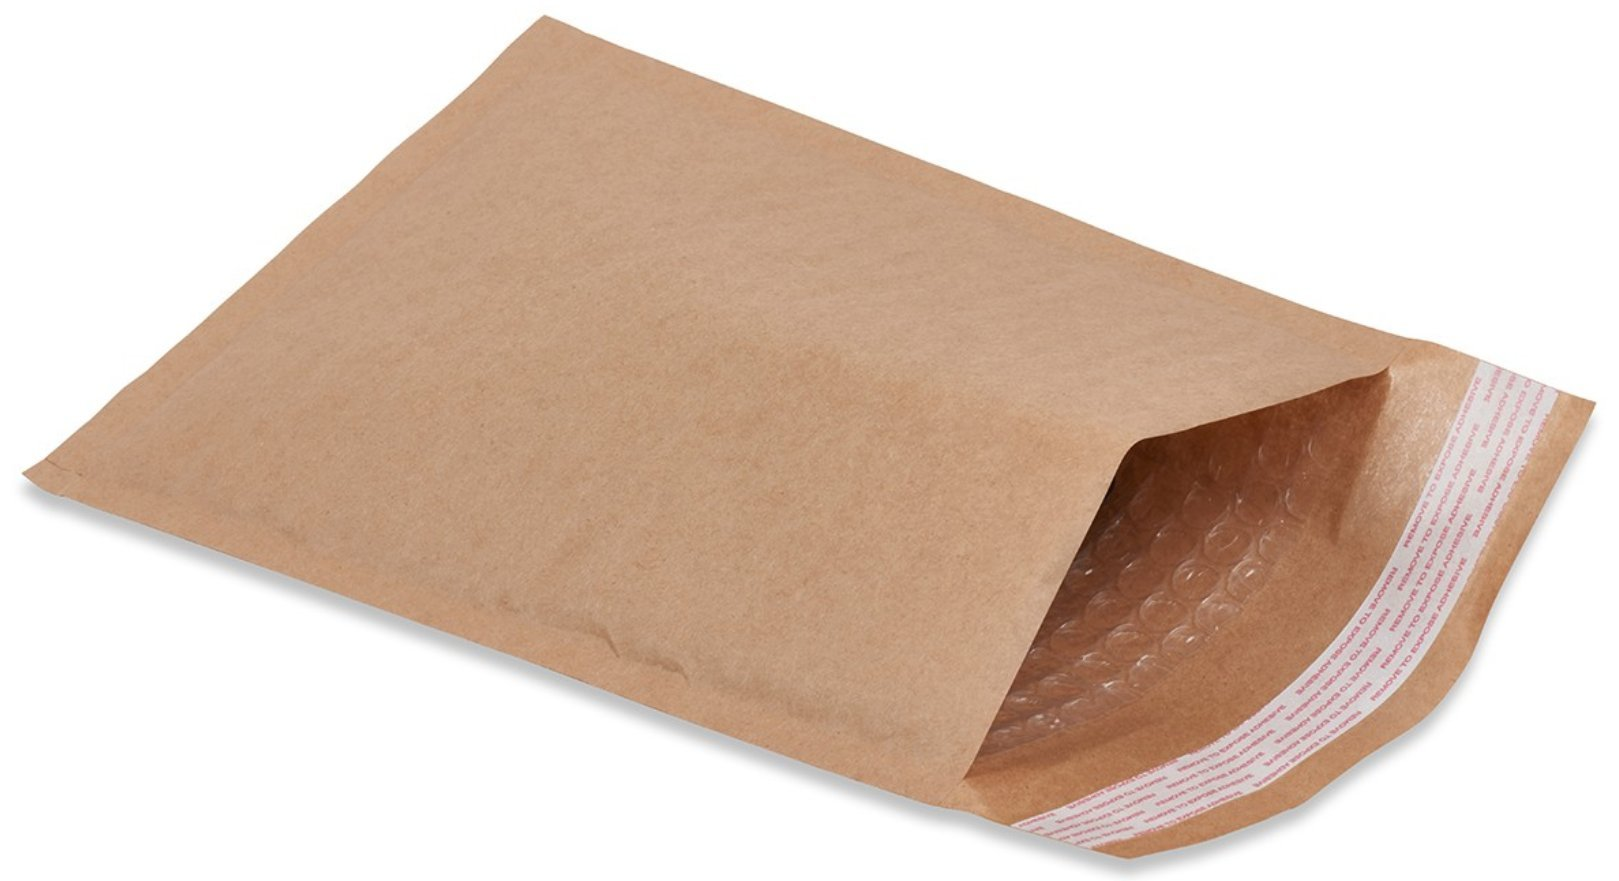 Natural Kraft bubble mailers 14.25 x 19 Brown Padded envelopes 14 1/4 x 19 by Amiff. Pack of 10 Kraft Paper cushion envelopes. Exterior size 14.25 x 20 (14 1/4 x 20). Peel and Seal. Mailing, shipping.